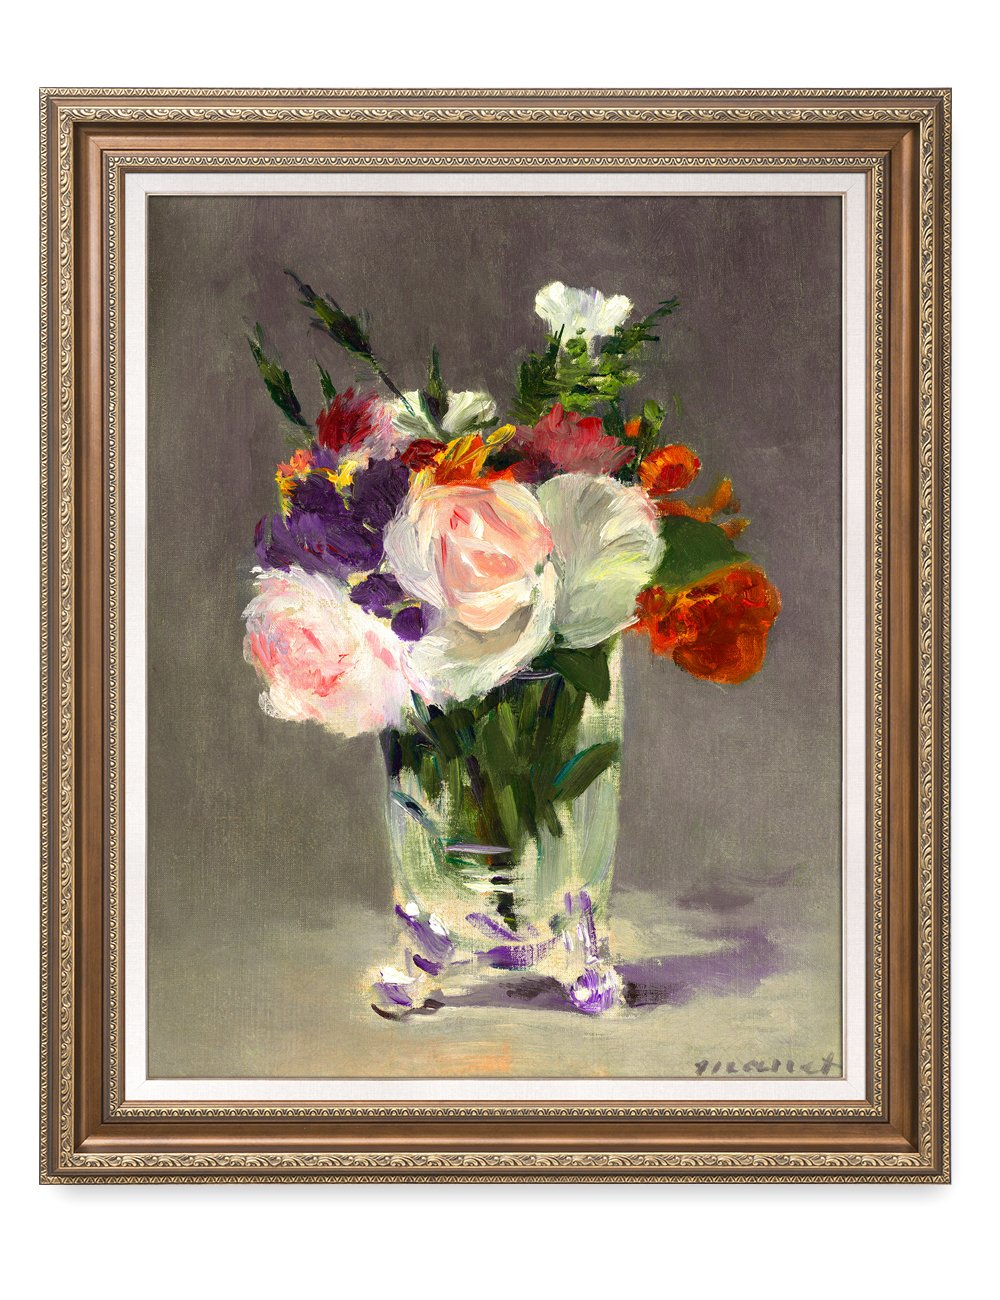 DecorArts- Flowers in a Crystal Vase, Edouard Manet Art Reproduction. Giclee Print& Museum Quality Framed Art. 24x30'', Outside Size: 30x36''